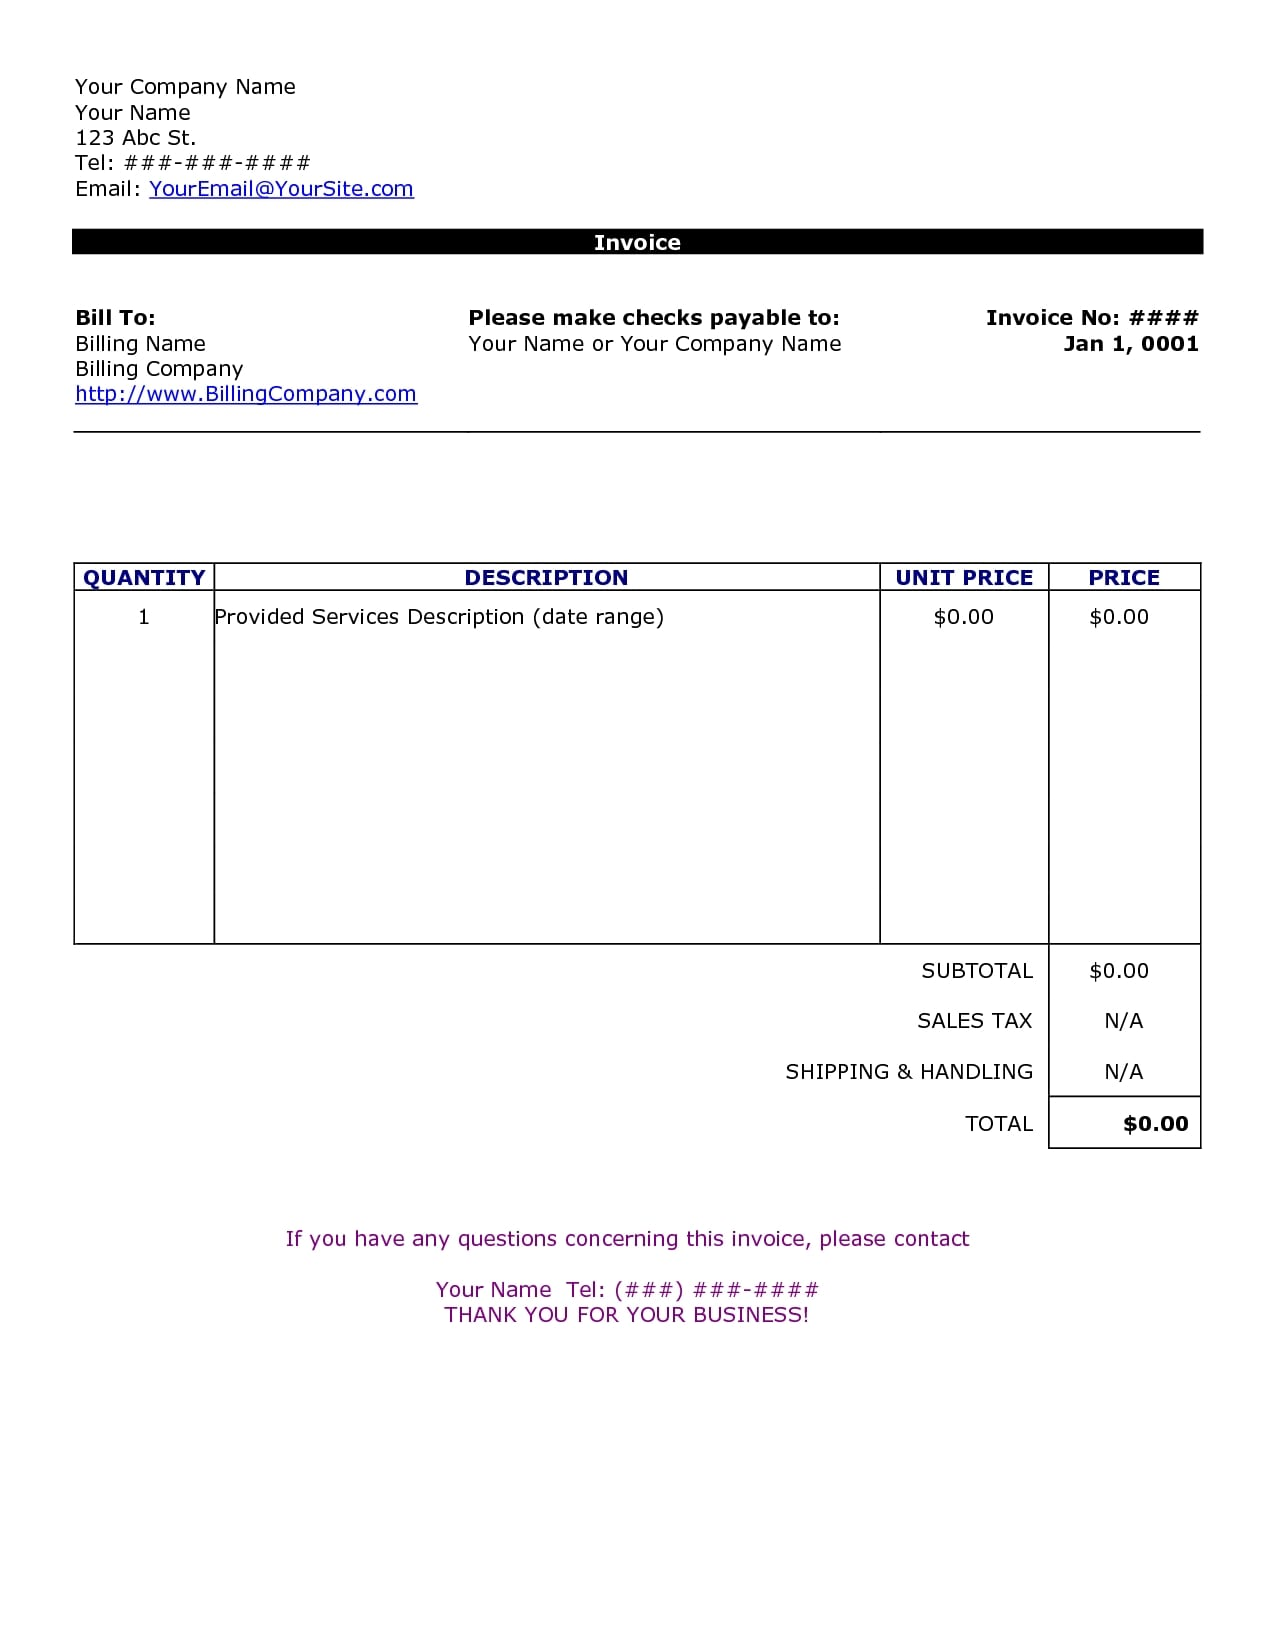 Invoice Template Google Docs Invoice Template Word Doc Spreadsheet Templates for Busines Spreadsheet Templates for Busines Word Document Invoice Template Blank Invoice Template Word Doc